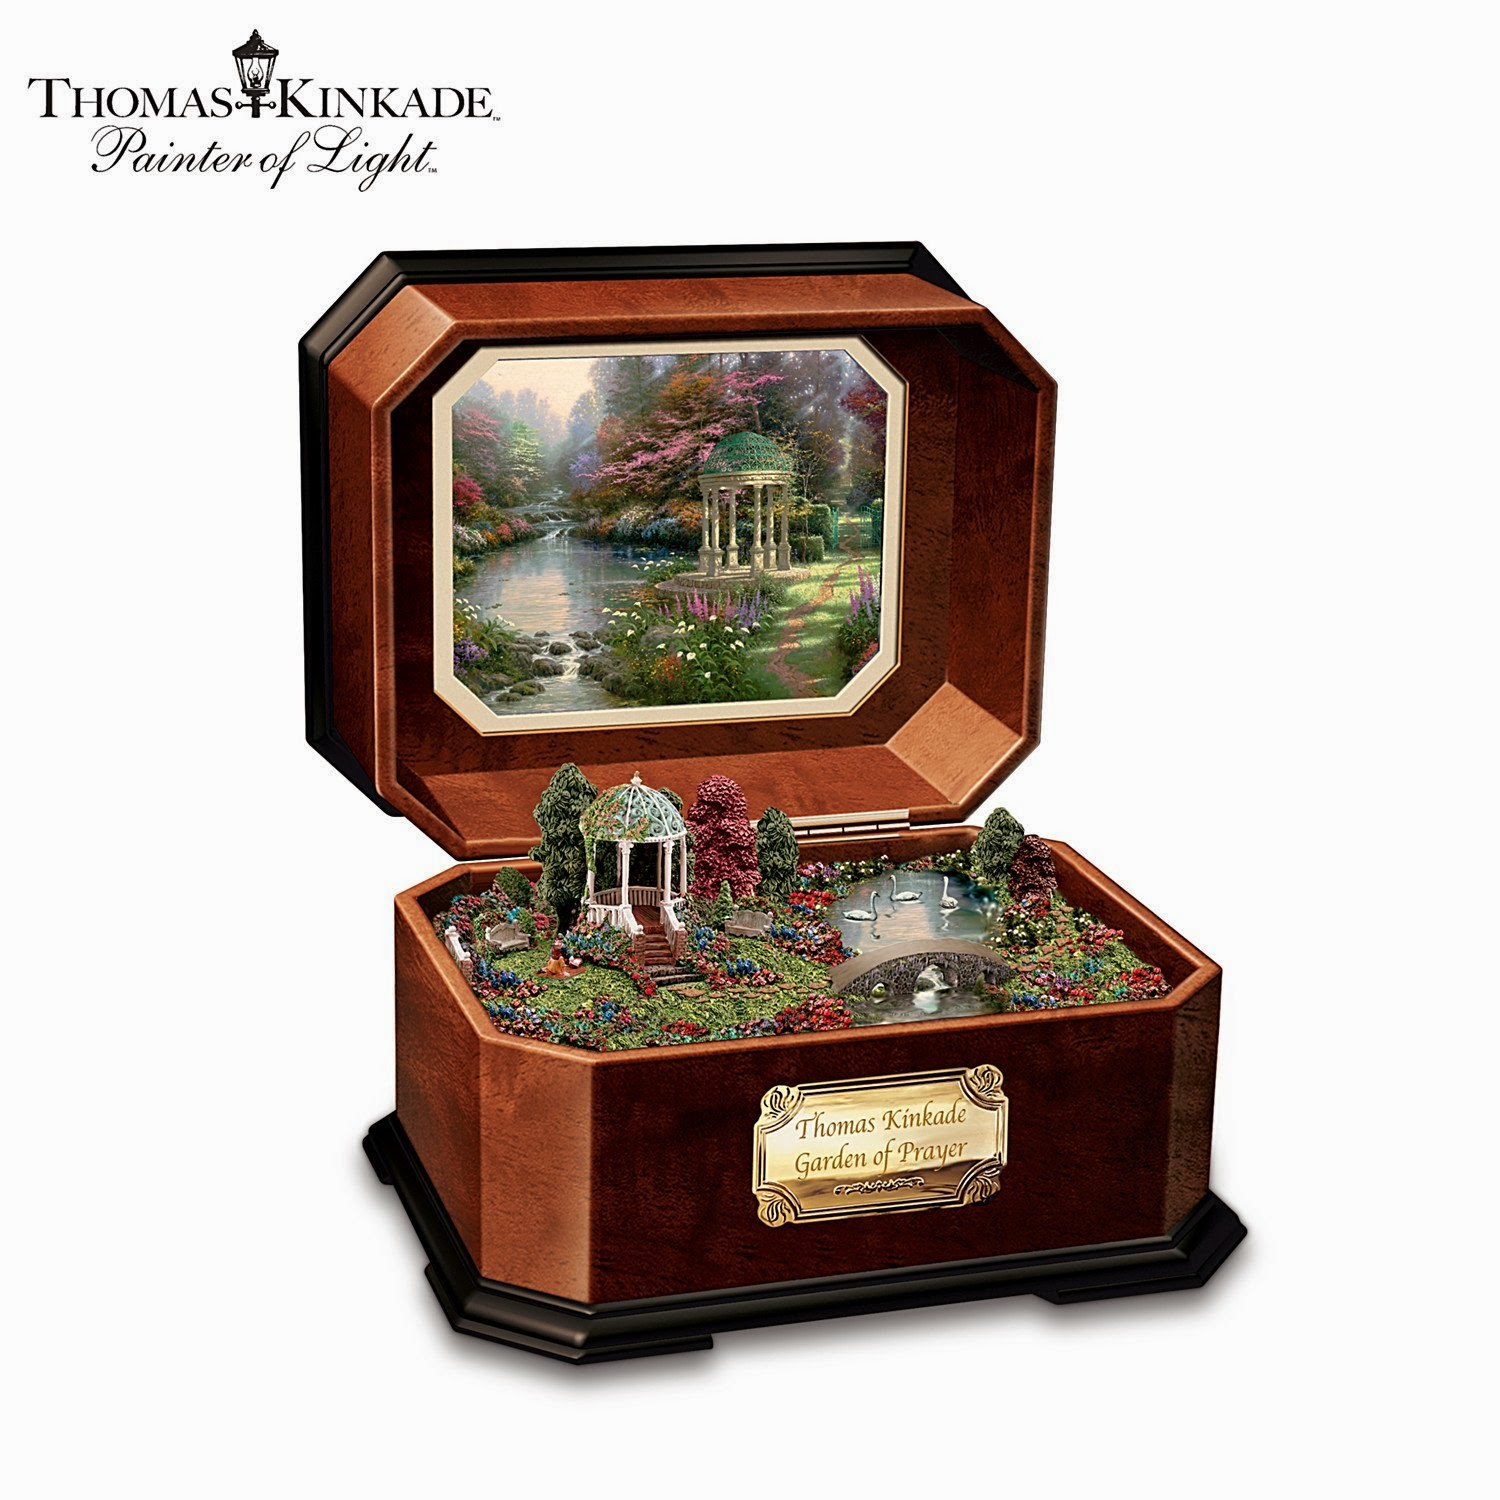 http://www.squidoo.com/thomas-kinkade-music-boxes-and-more#module155614932